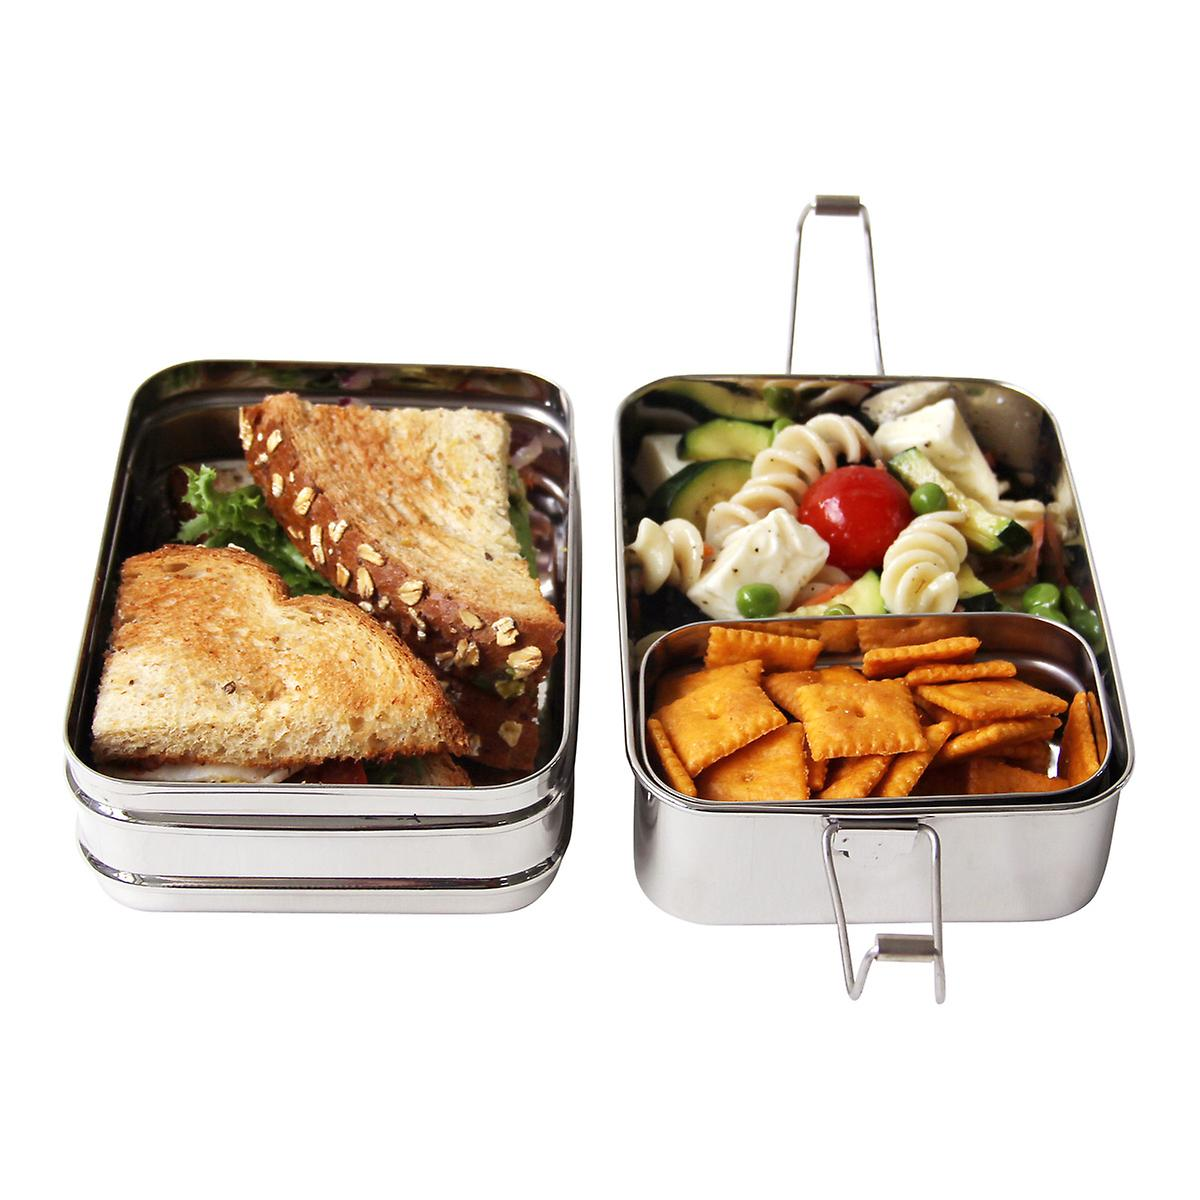 Ecolunchbox Stainless Steel Rectangular 3 In 1 Lunch Box